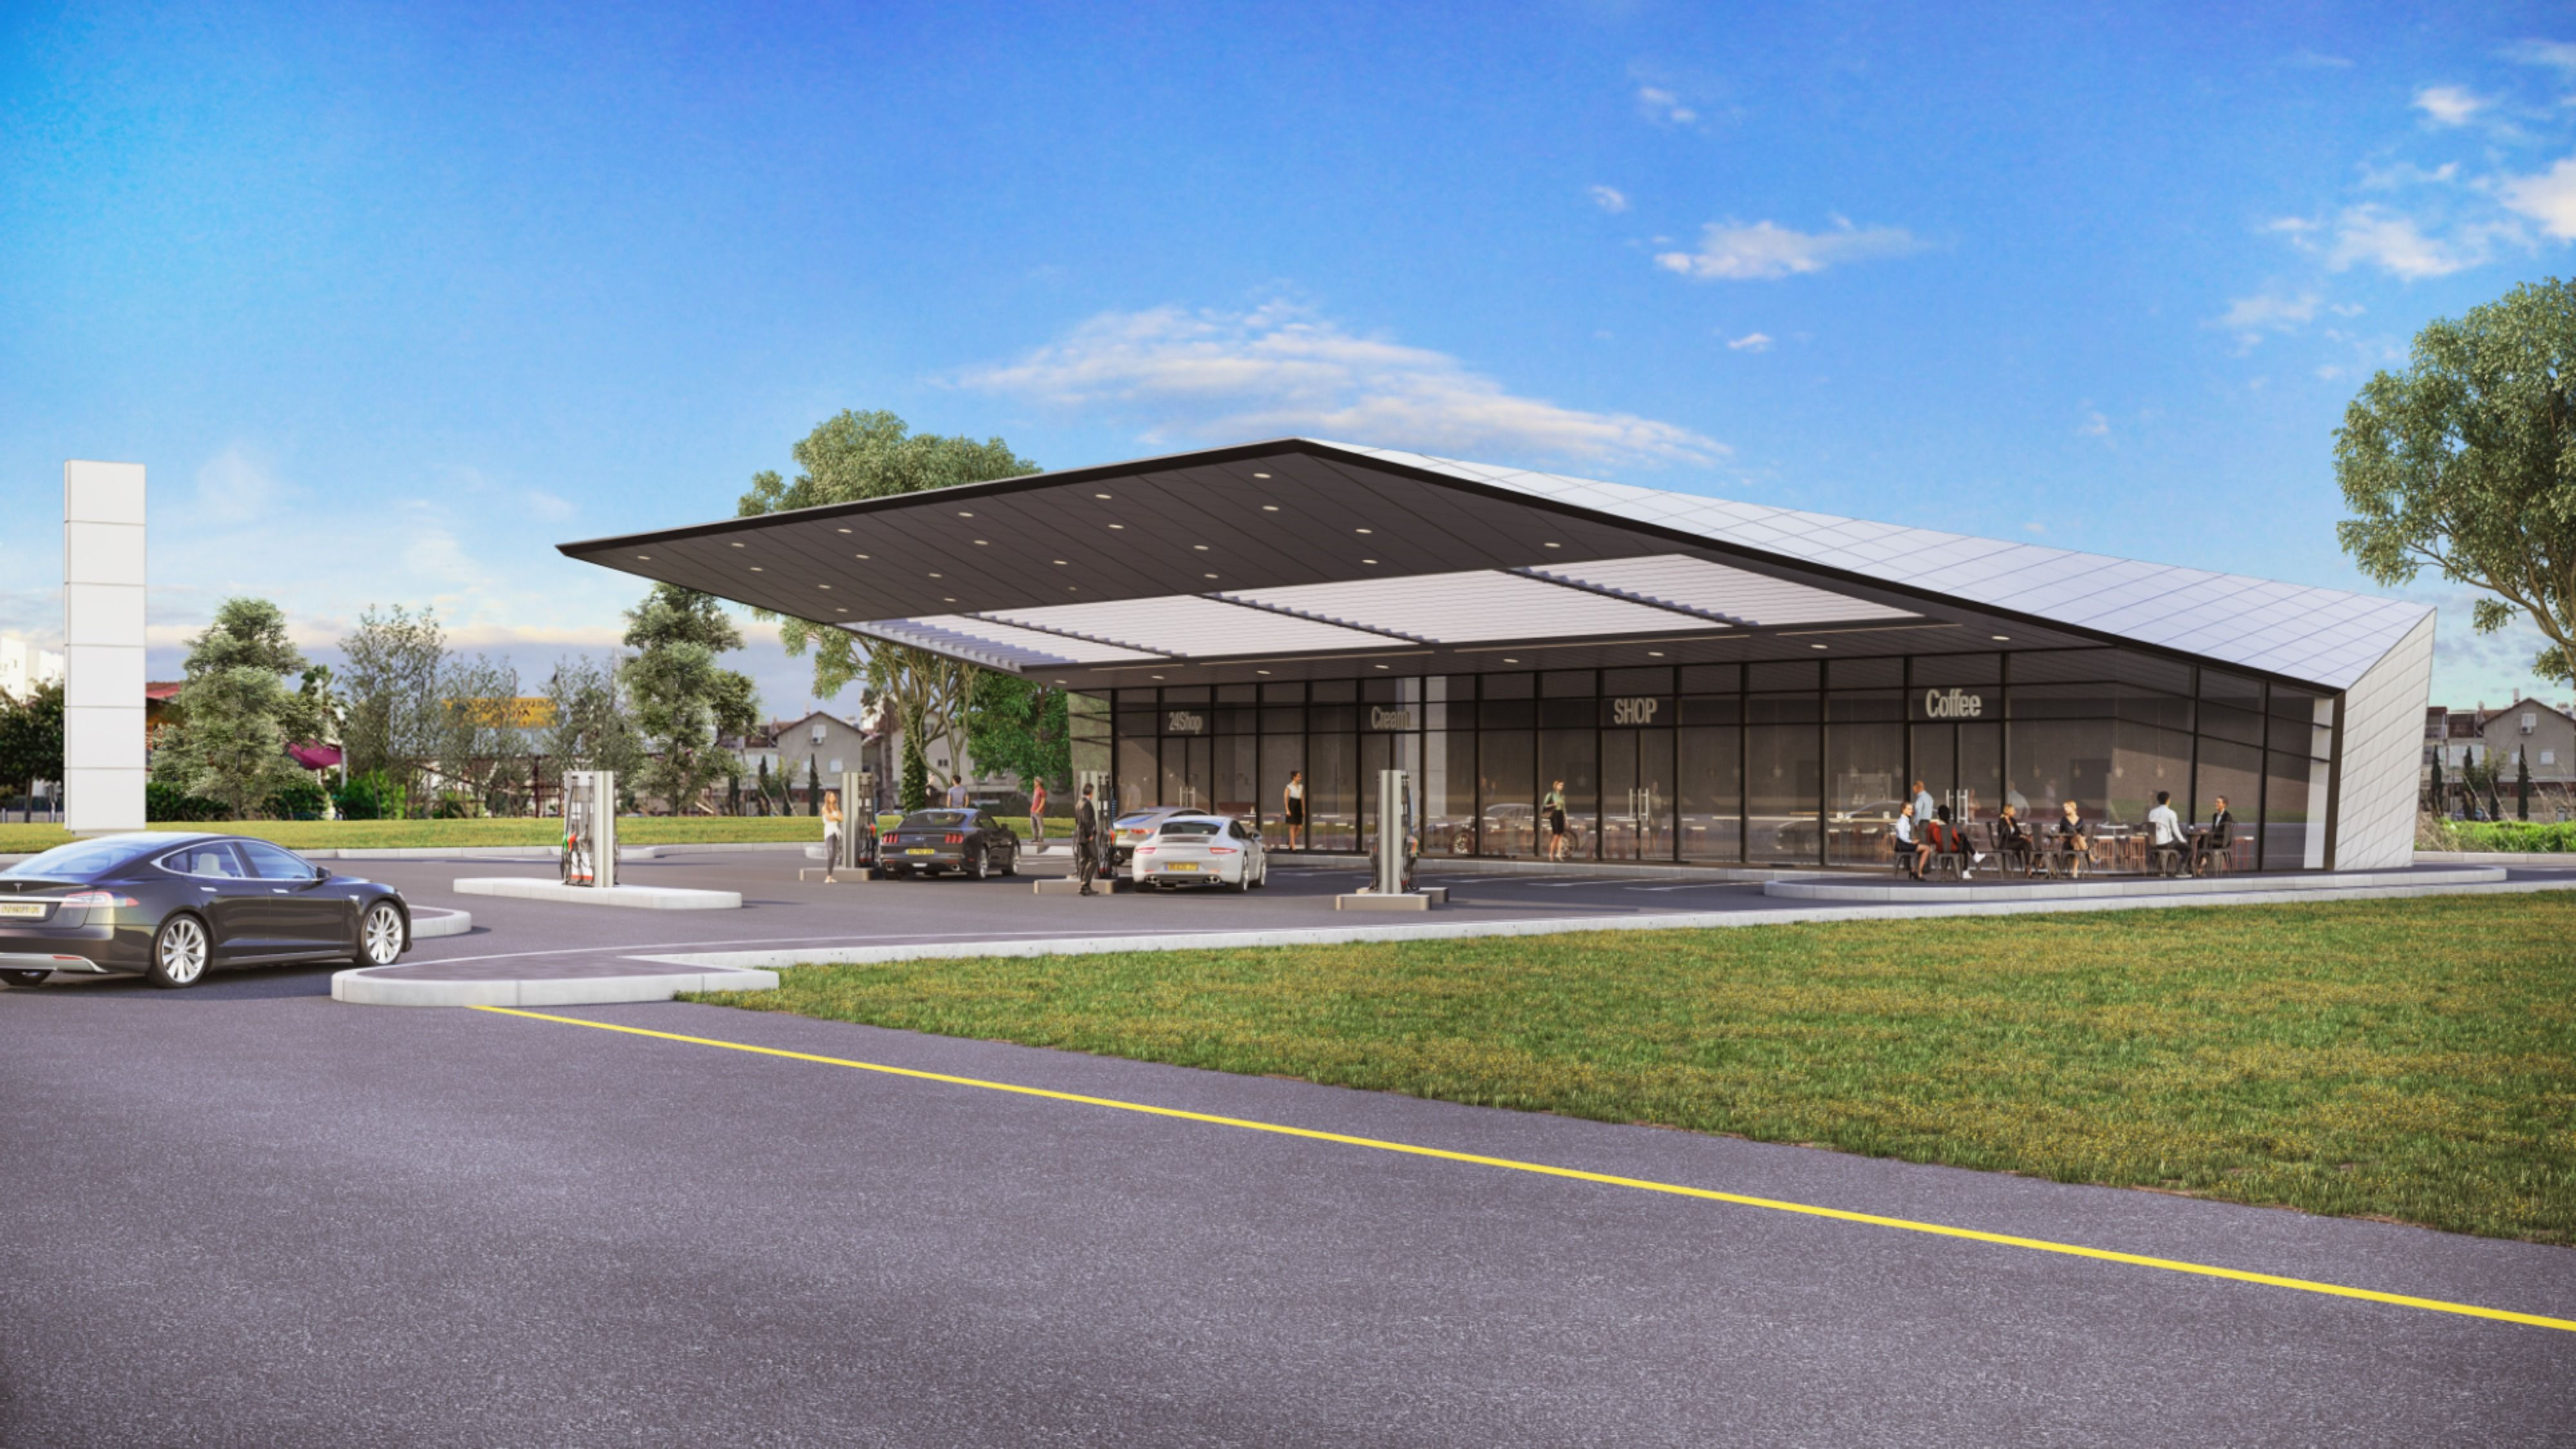 Modern Gas Stations In 2020 Architect Small Buildings Gas Station